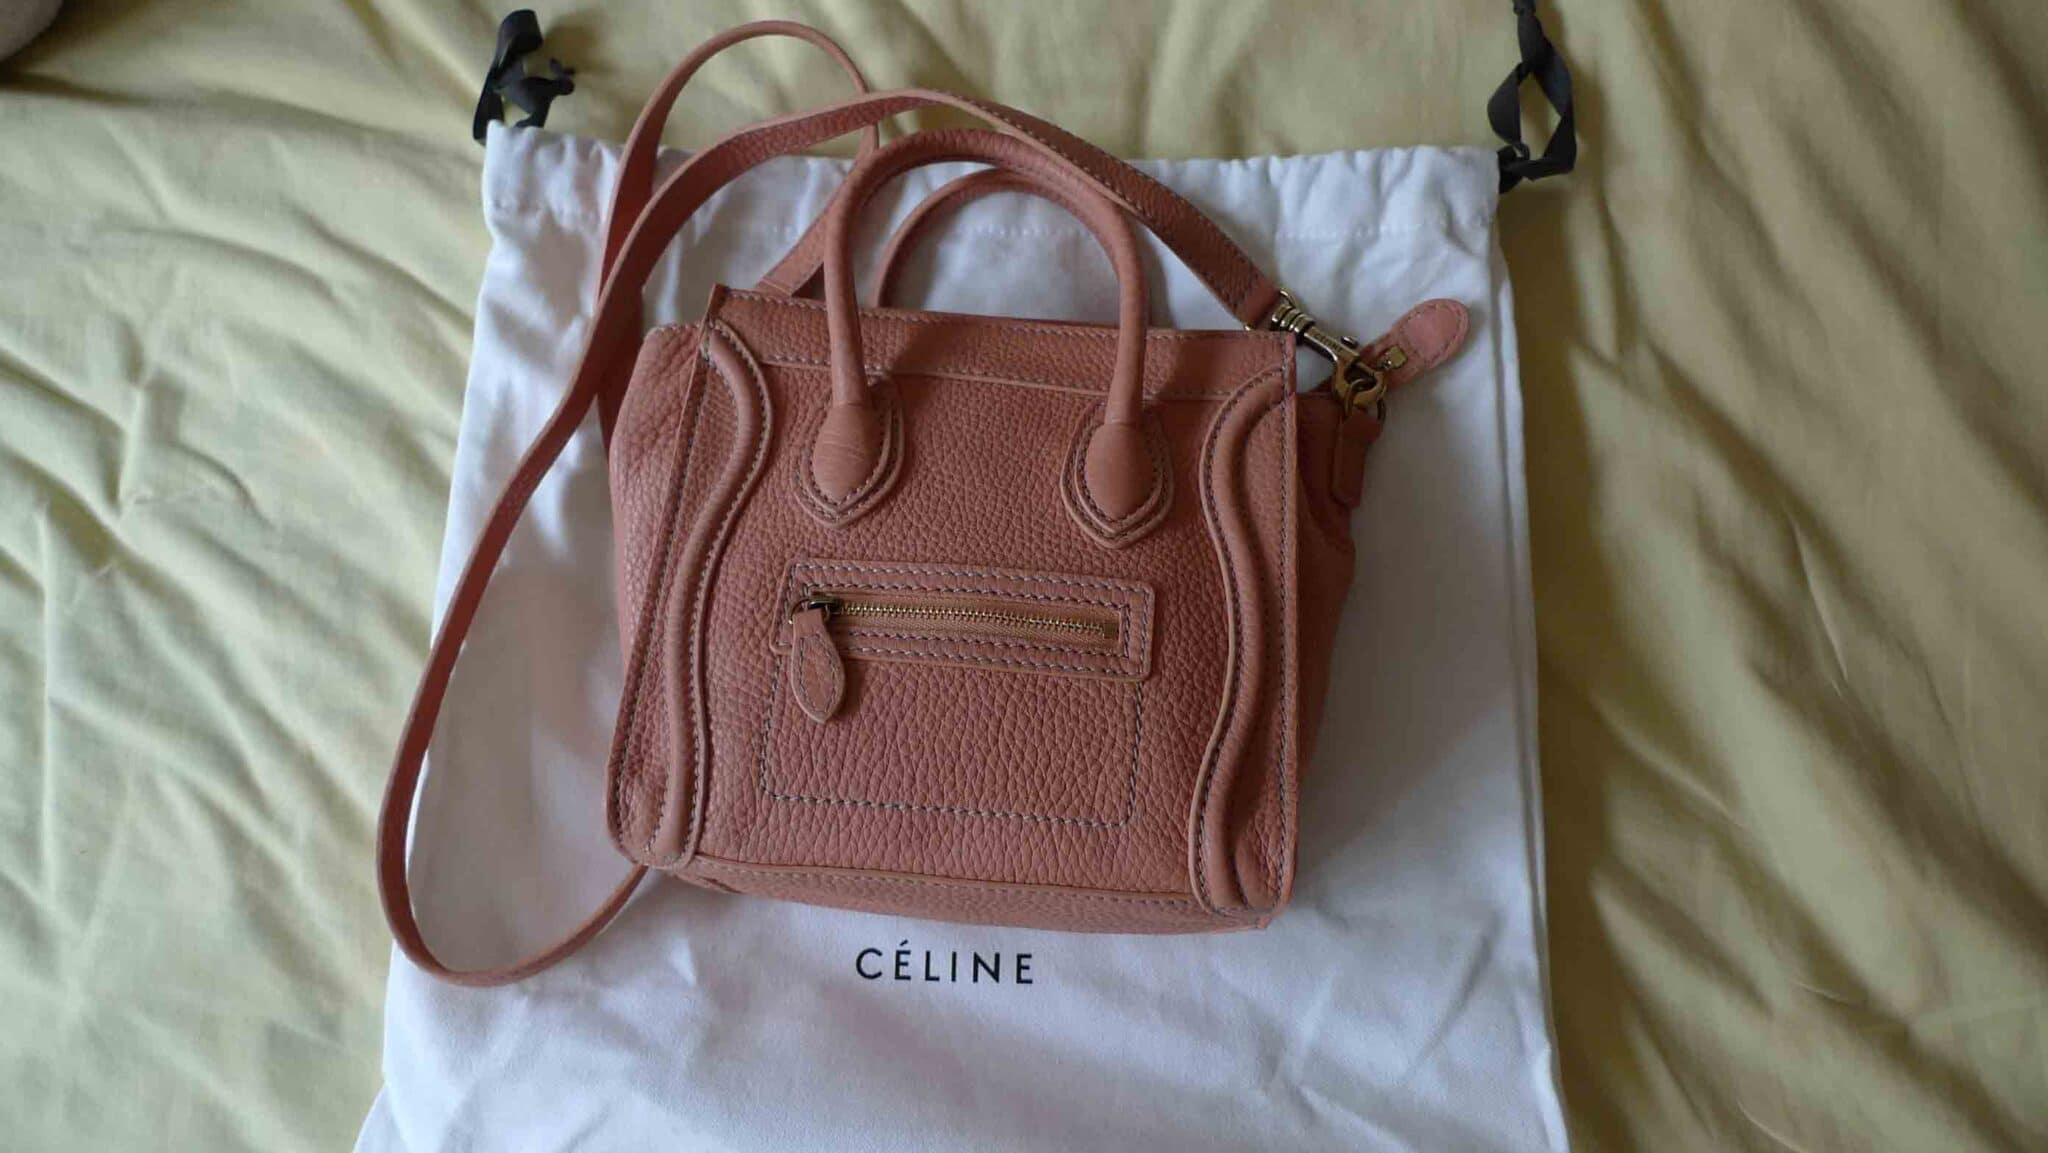 sac cabas celine - Celine nano luggage in peach | Spotted Fashion